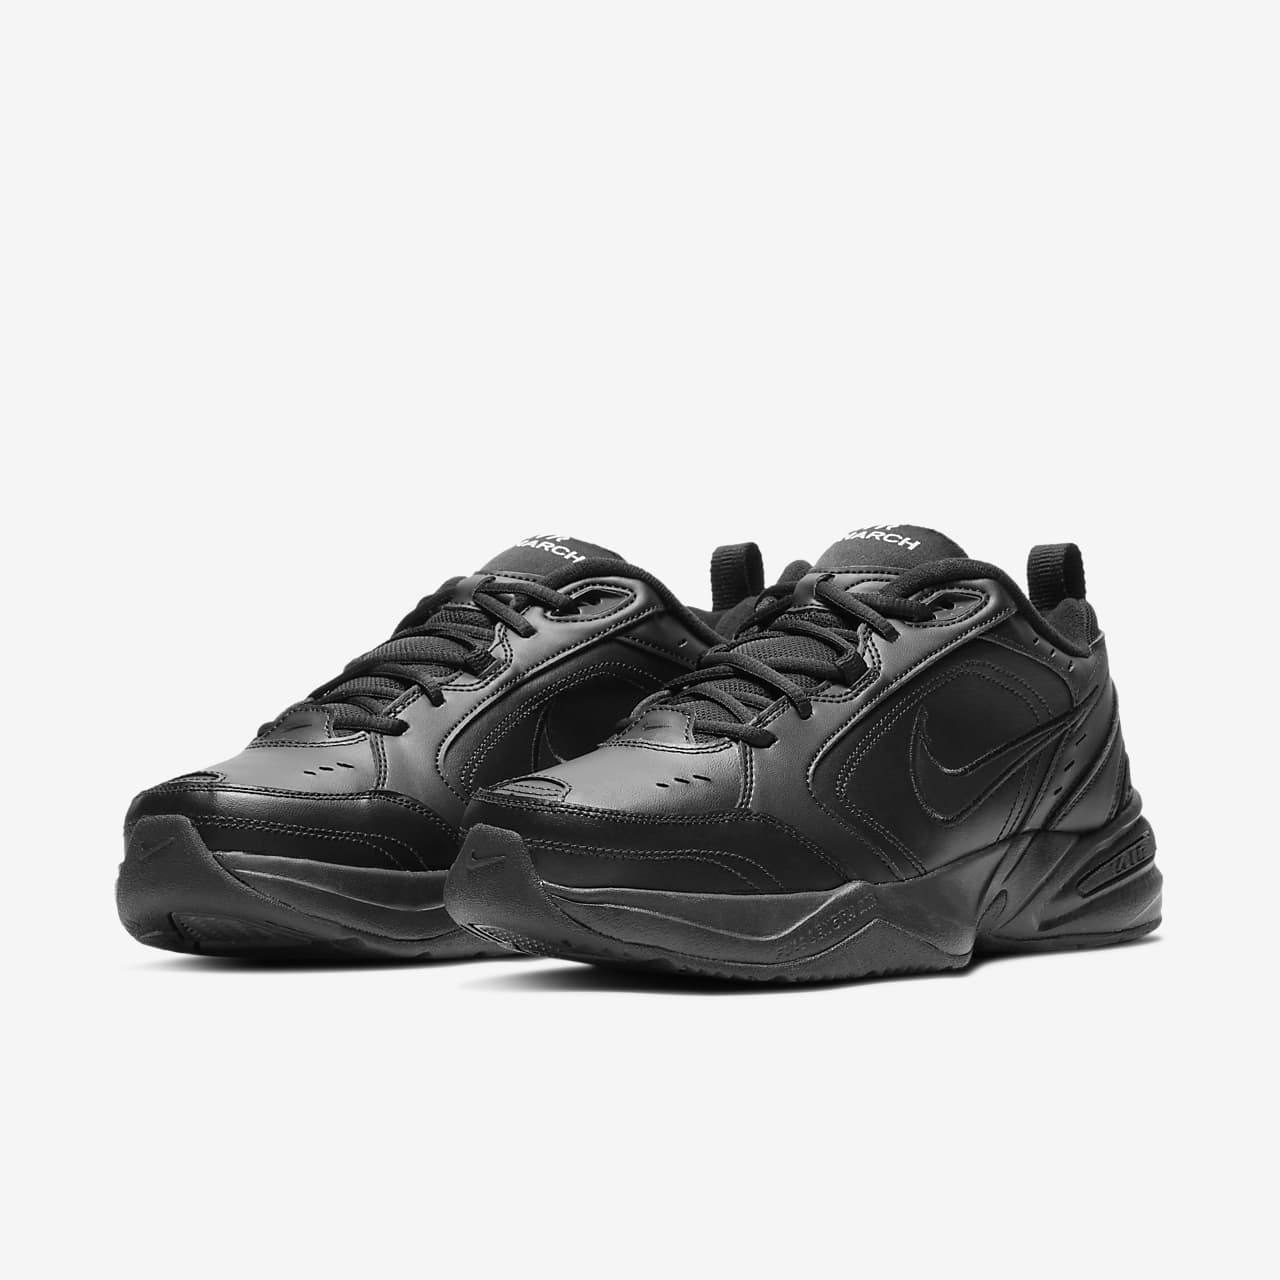 run shoes crazy price sold worldwide Nike Air Monarch IV Lifestyle/Gym Shoe